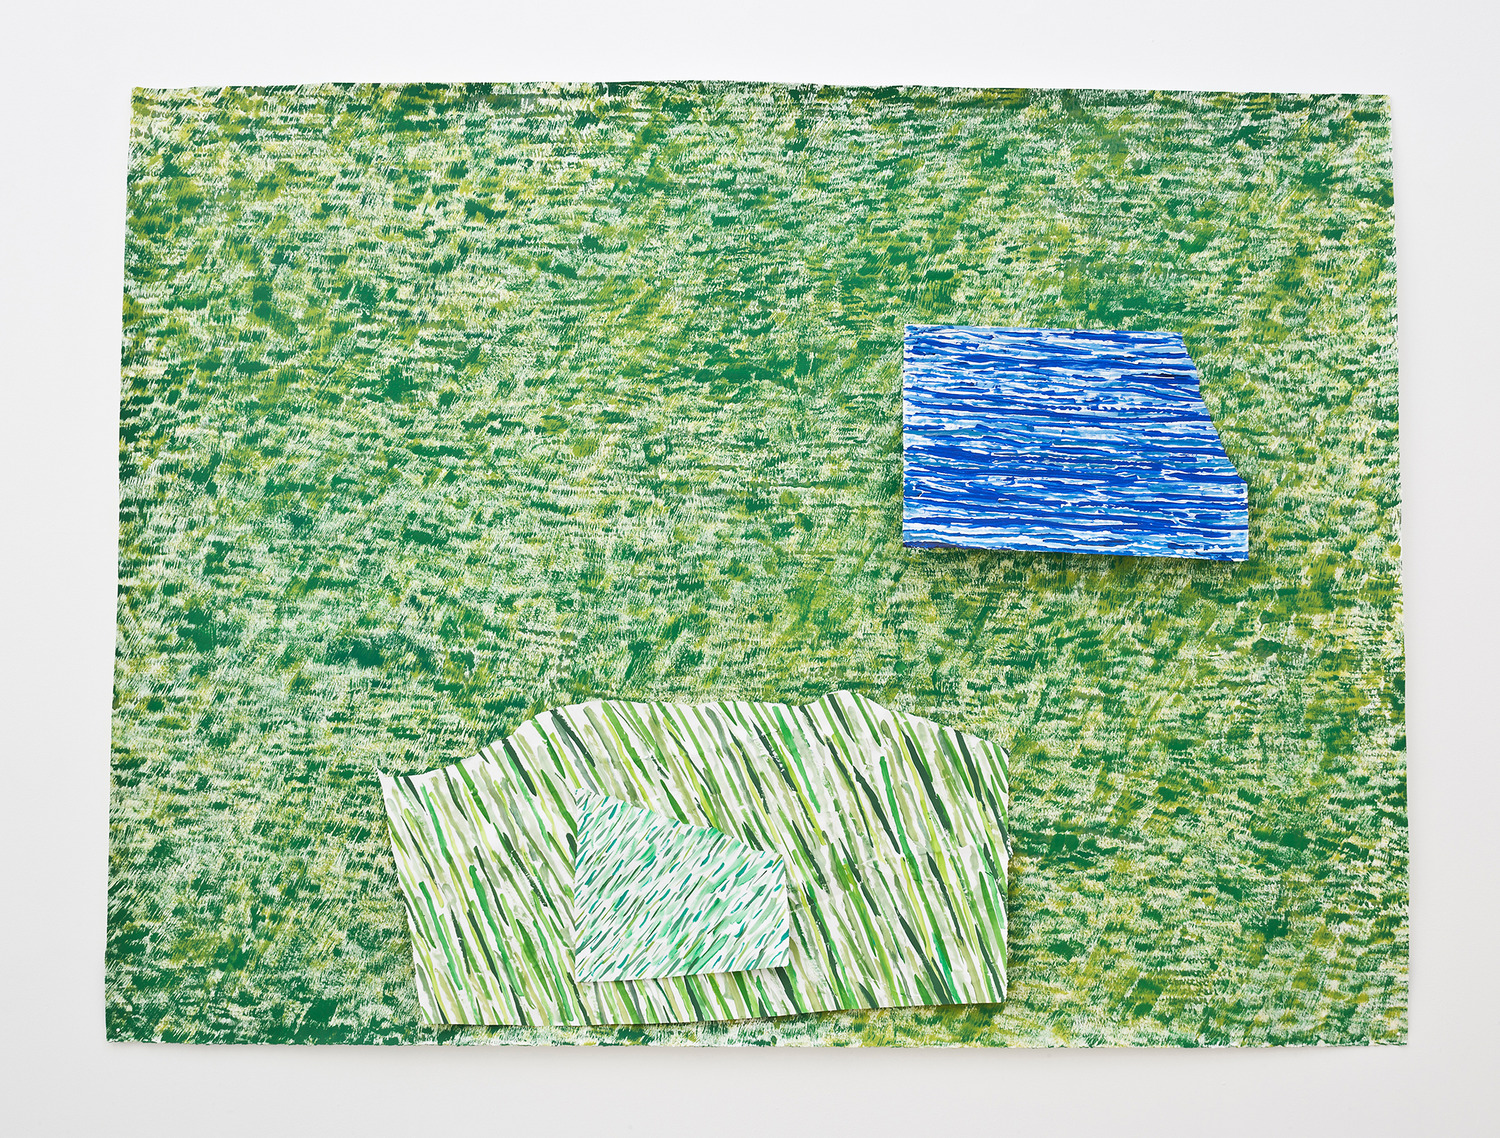 Contemporary Landscape # 1, 2013, Acrylic and household paint on paper, 126.5 x 172 x 3.7 cm